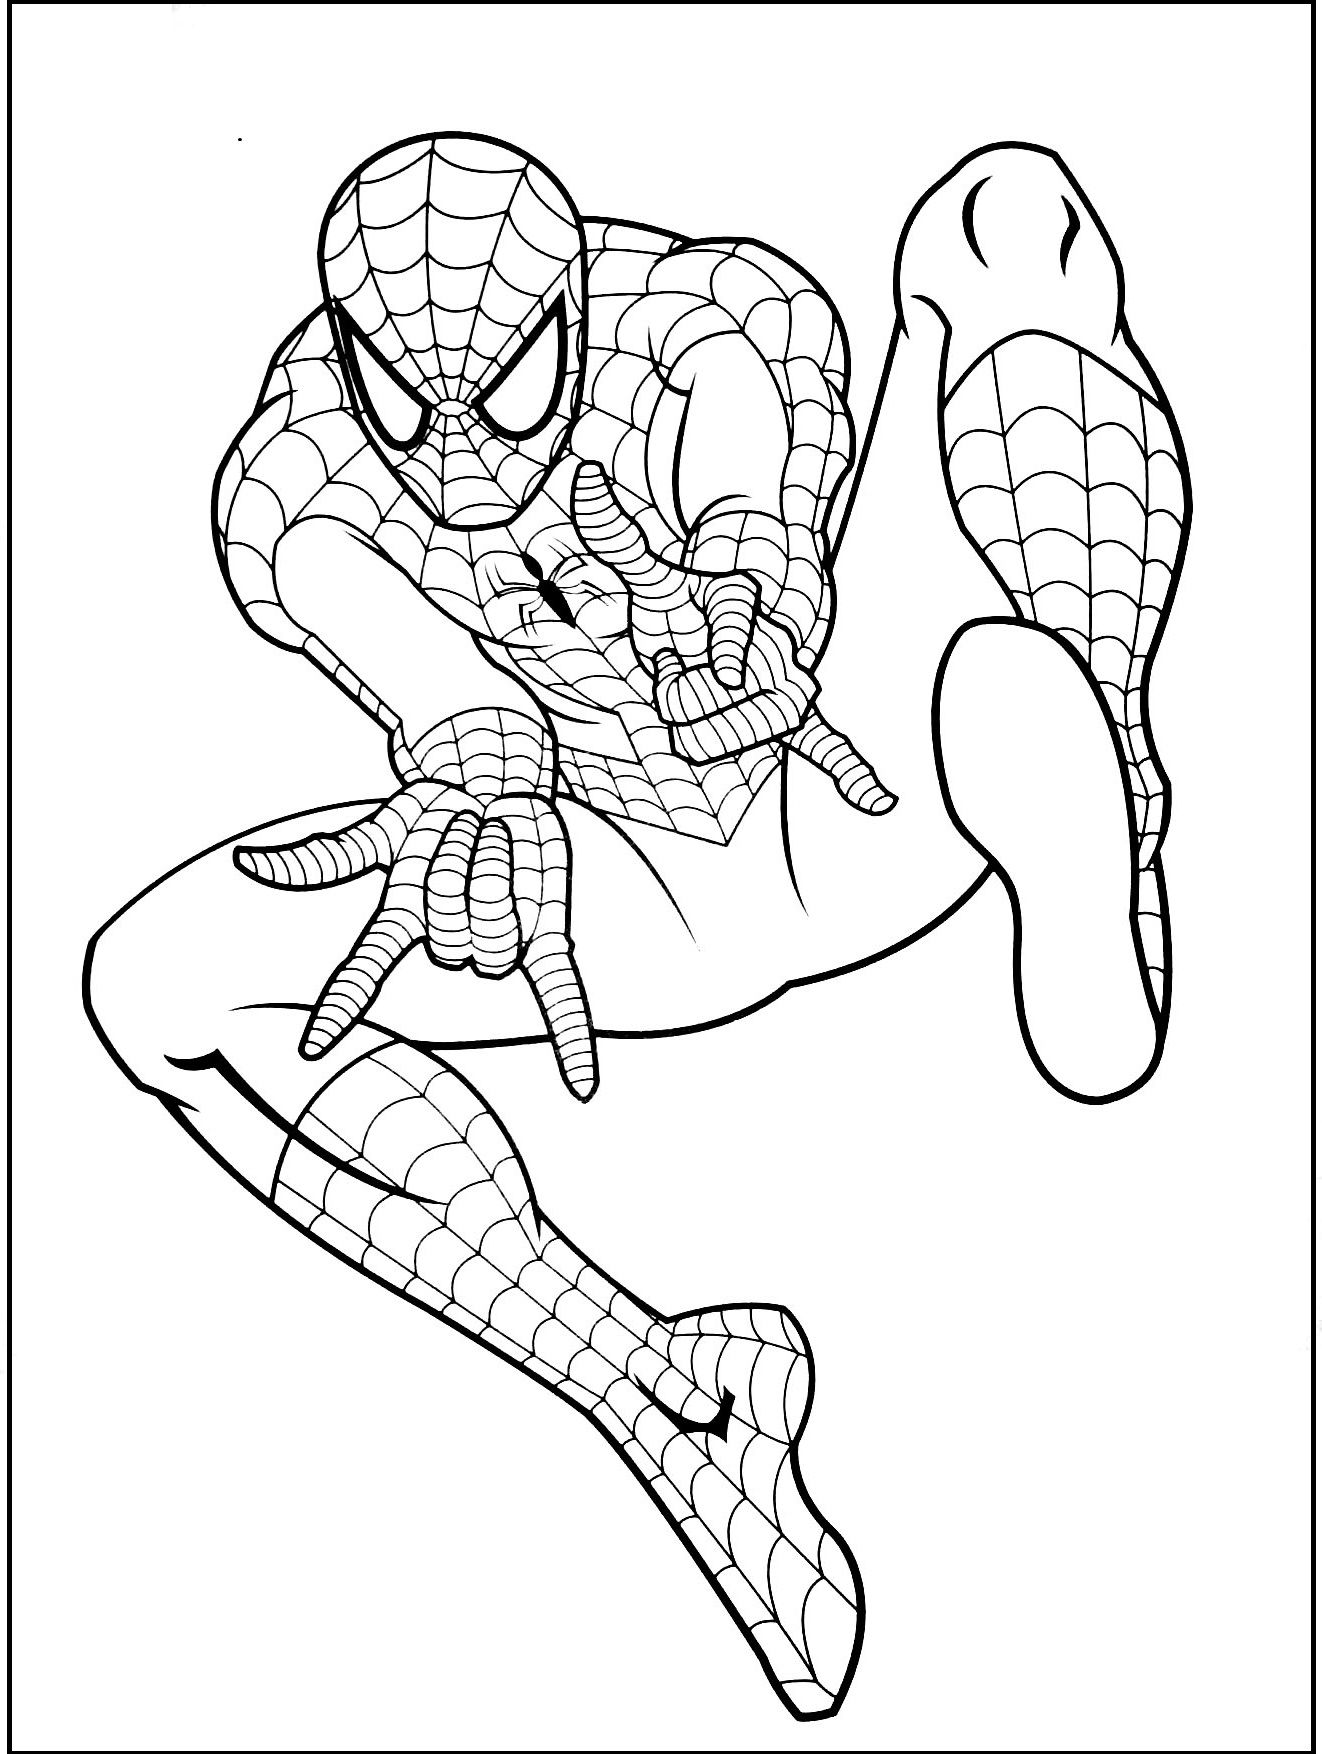 Spiderman Gratuit Coloring Picture For Kids